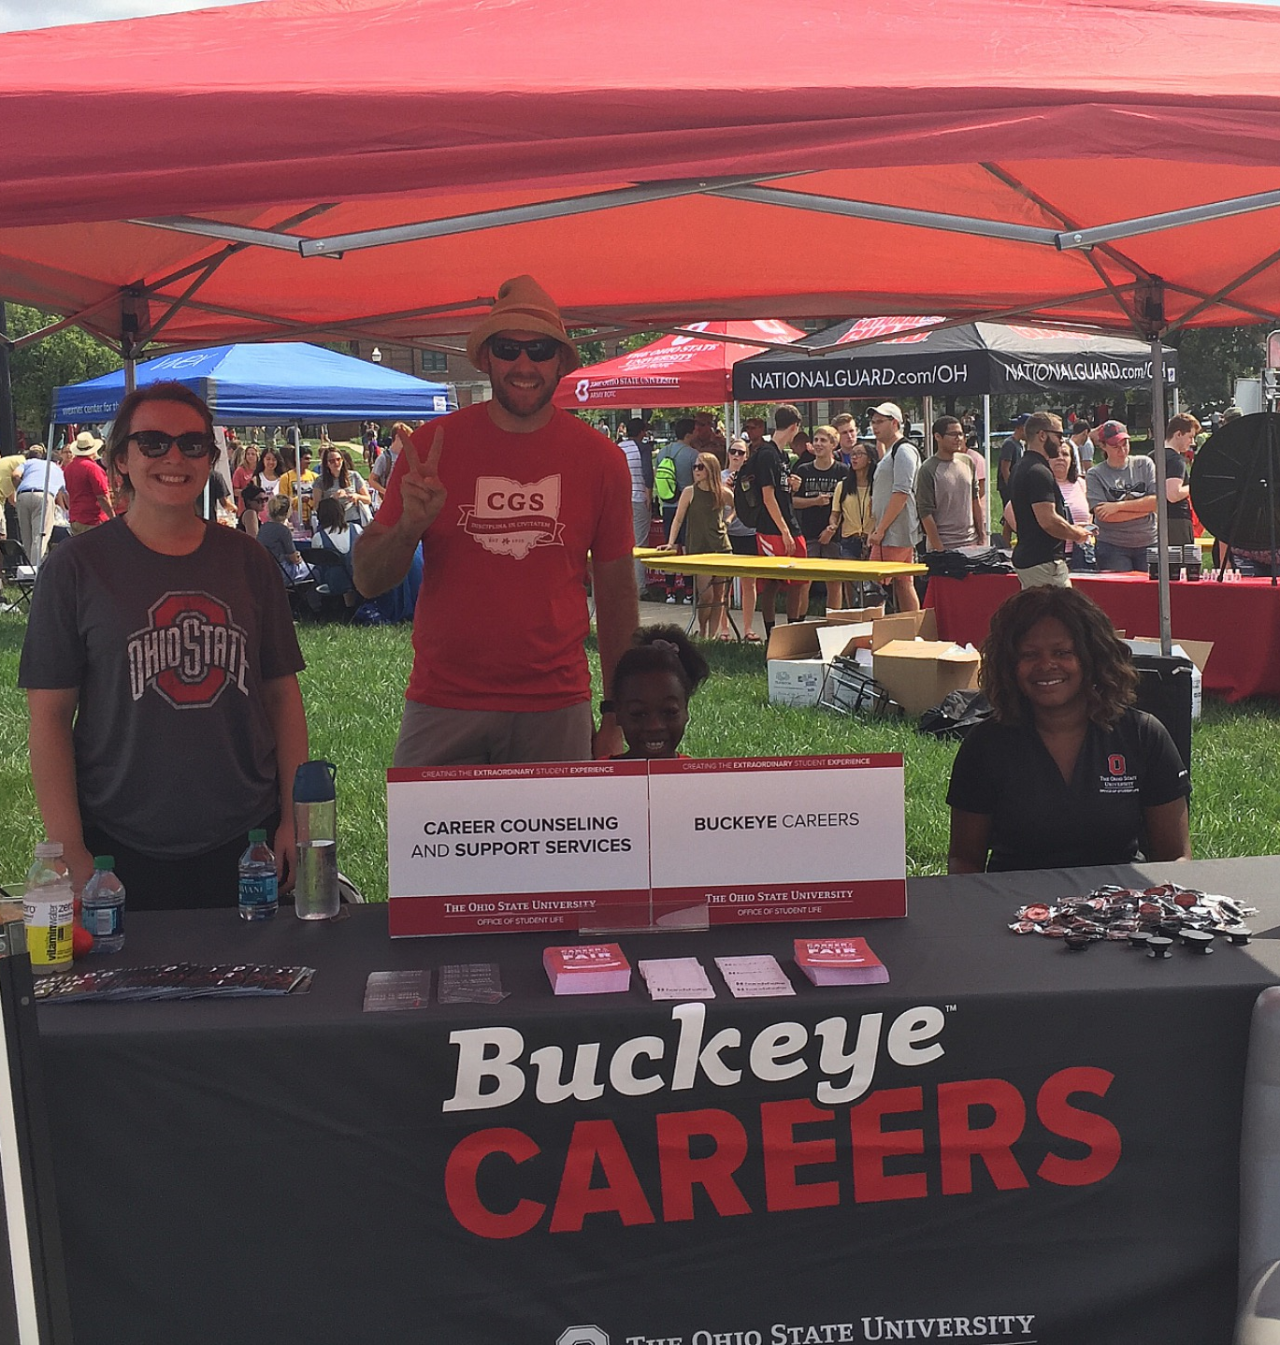 Buckeye Careers and Career Counseling and Support Services Staff at the Student Involvement Fair